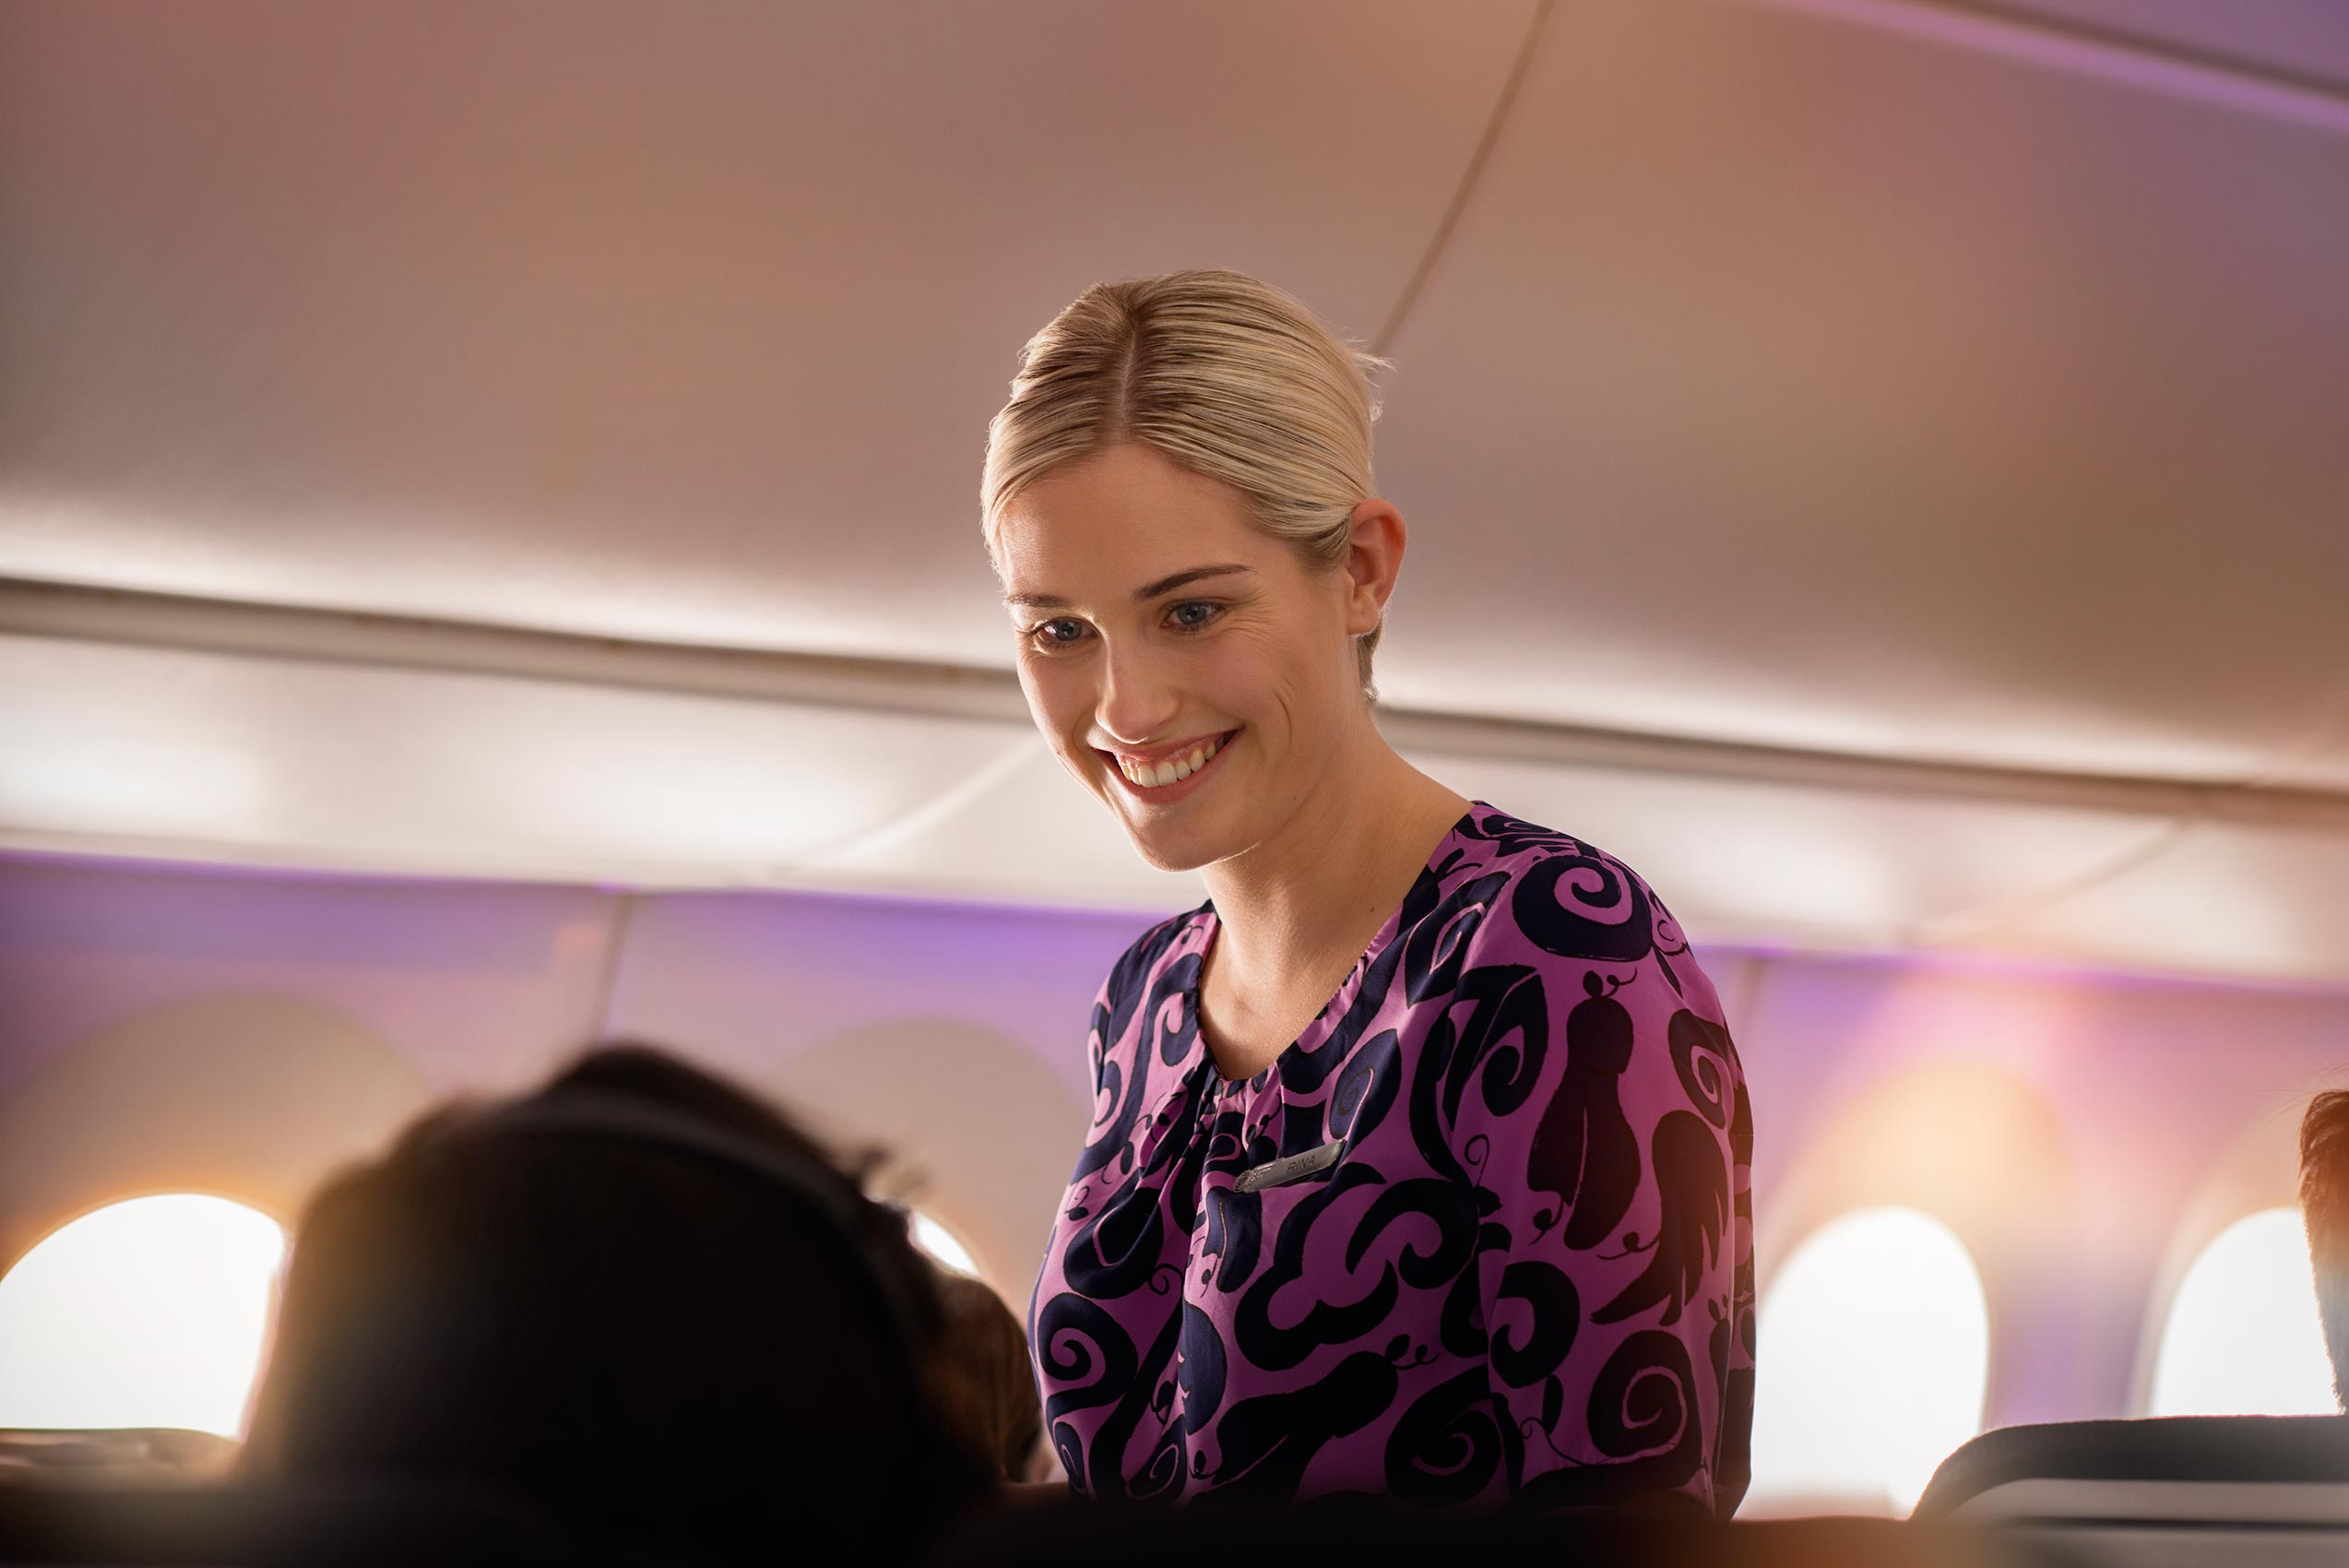 ChrisSisarich_AirNZ_Dreamliner5